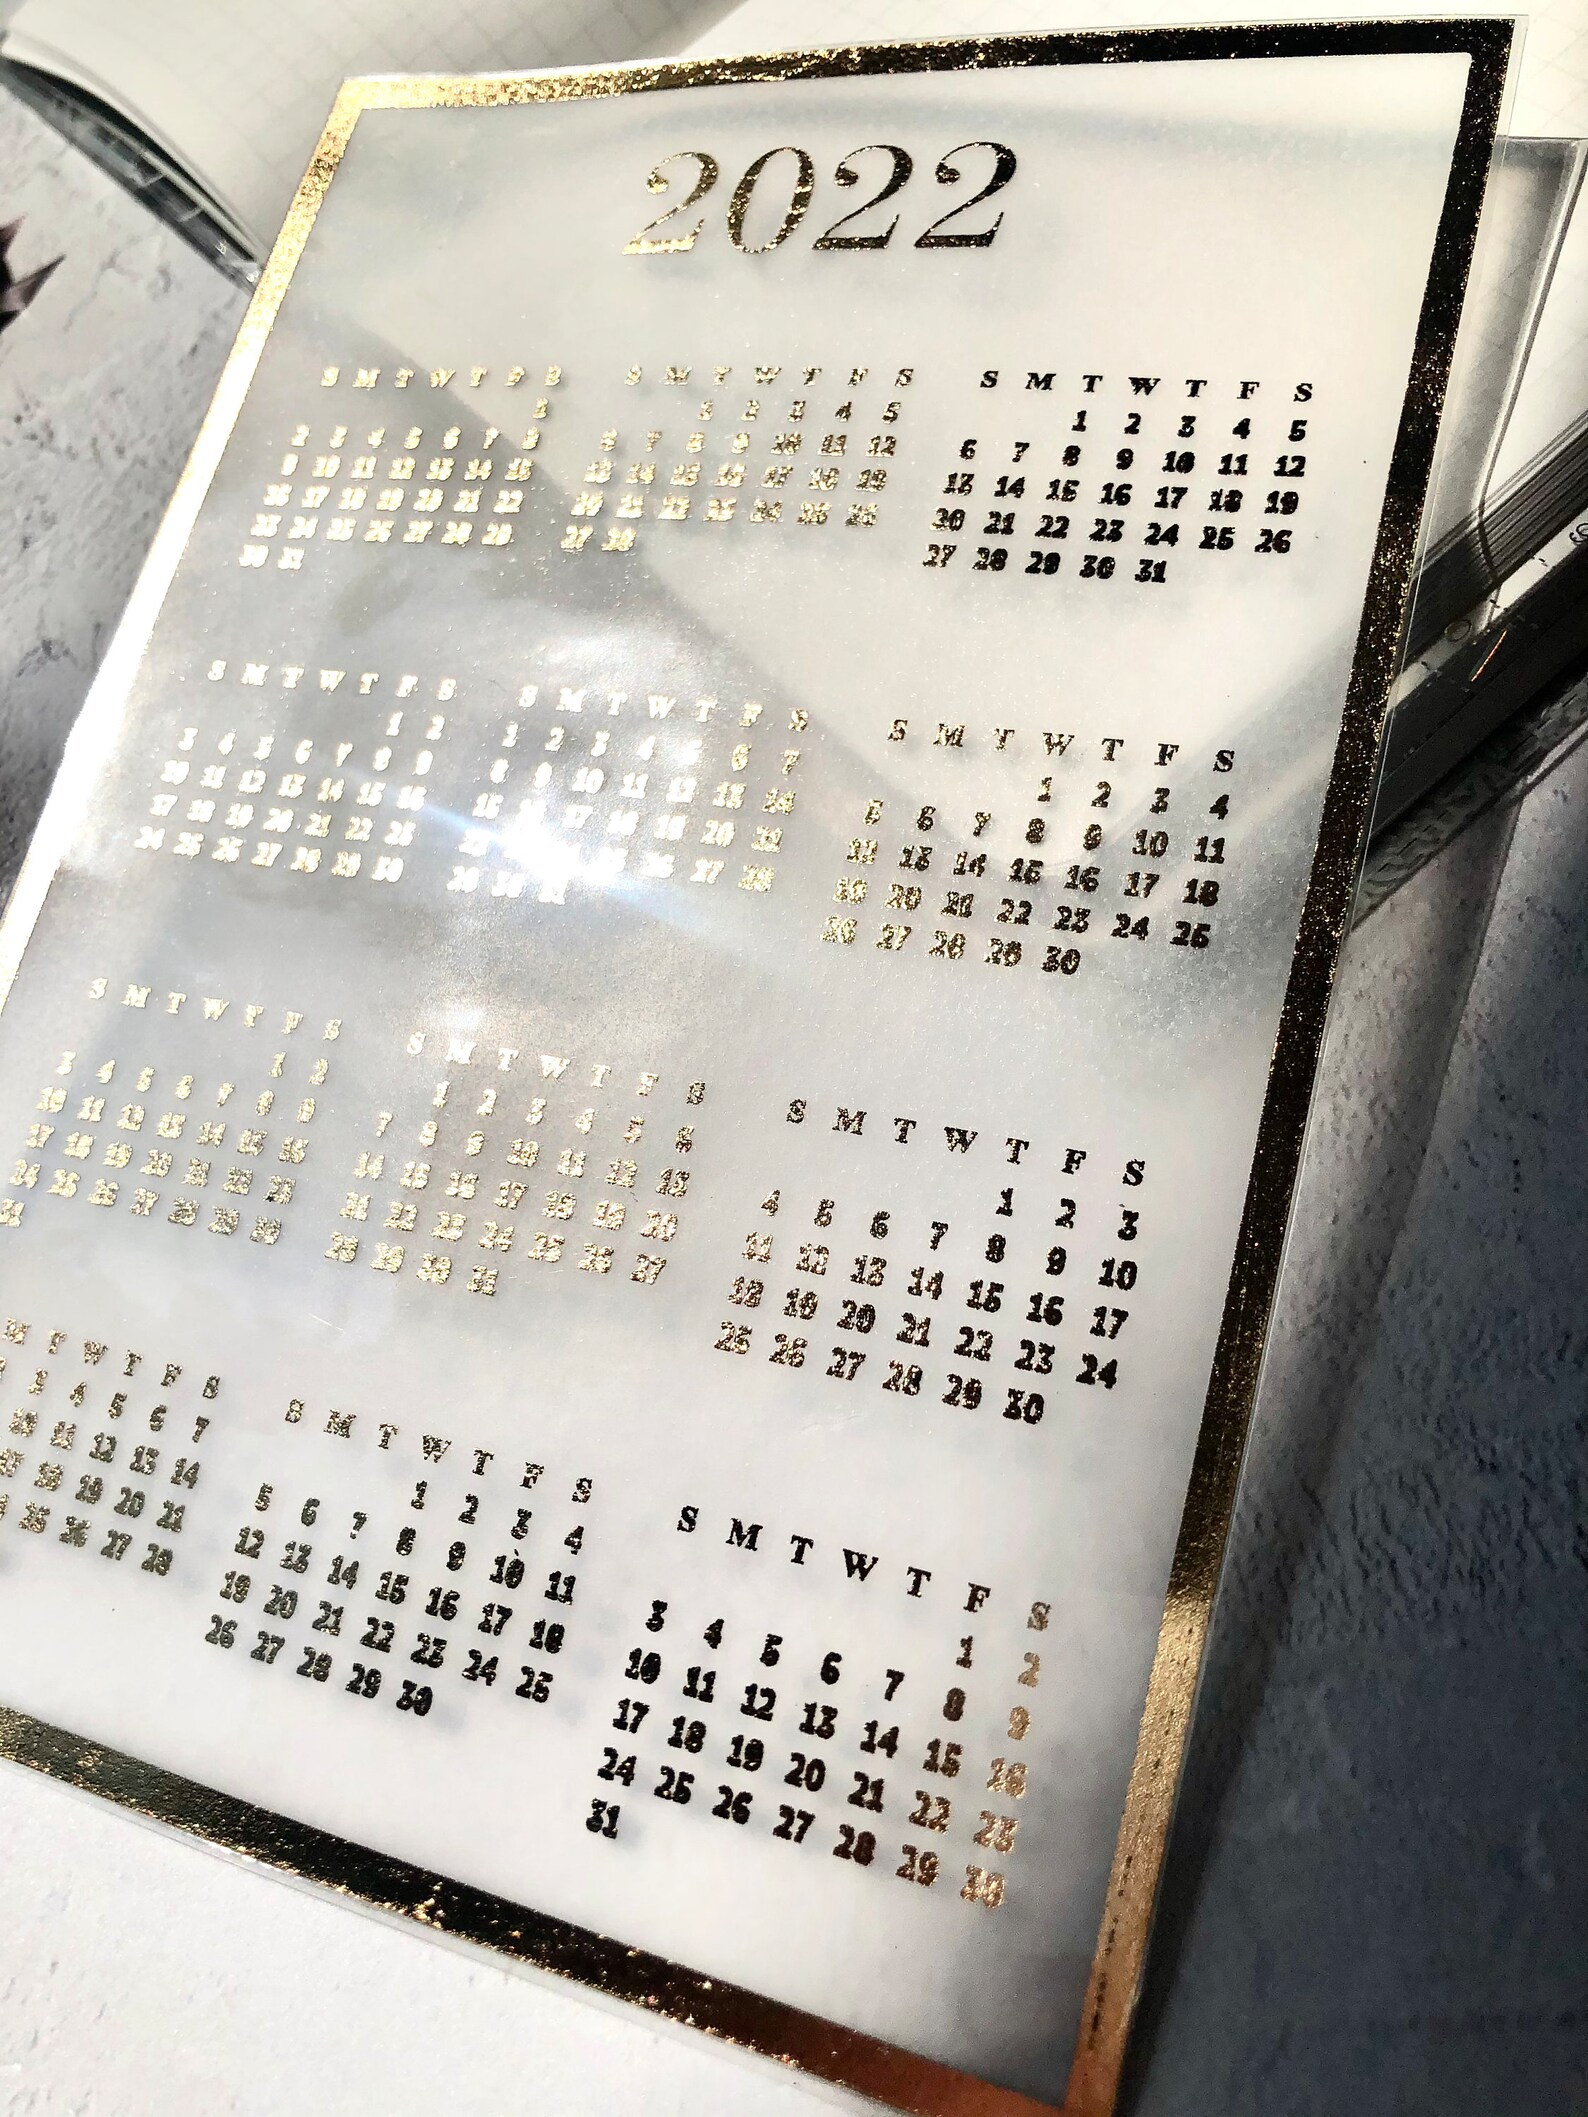 2022 Calendar Year To View Sunday Start Calendar Laminated within What Date Does Gcu Start 2022